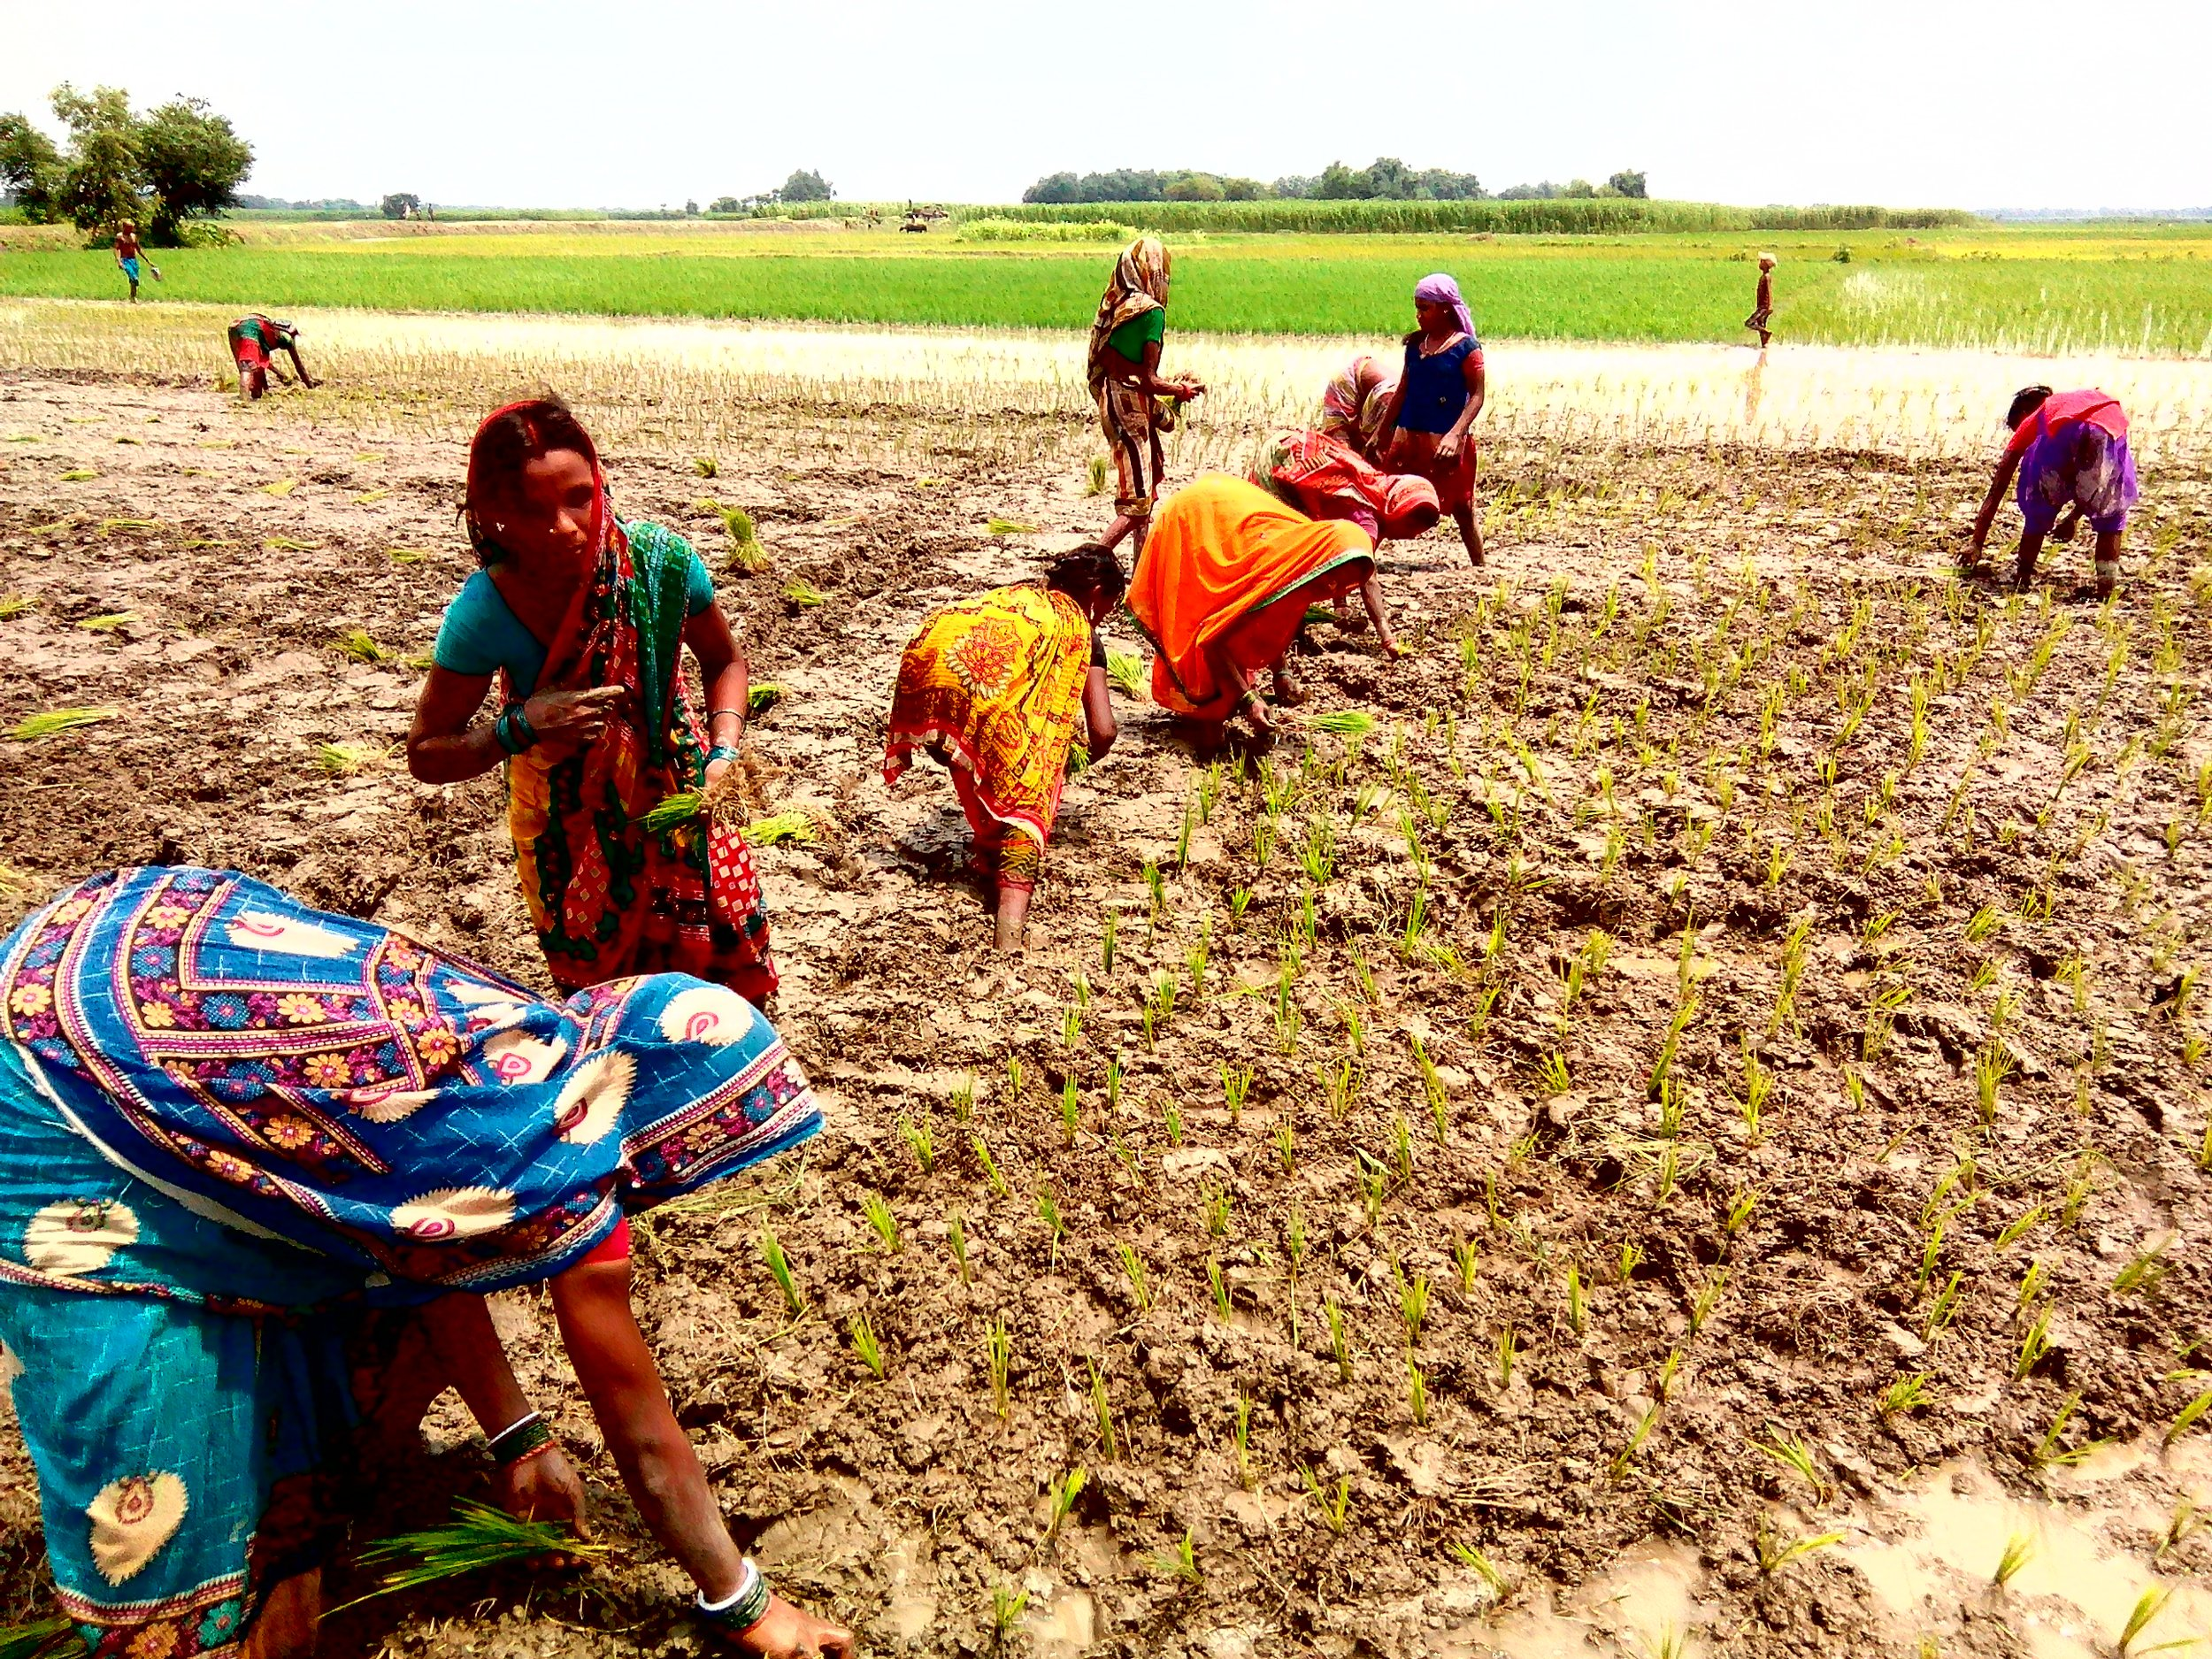 Women transplants paddy saplings in a village in Araria. Credit: Zaheeb Ajmal